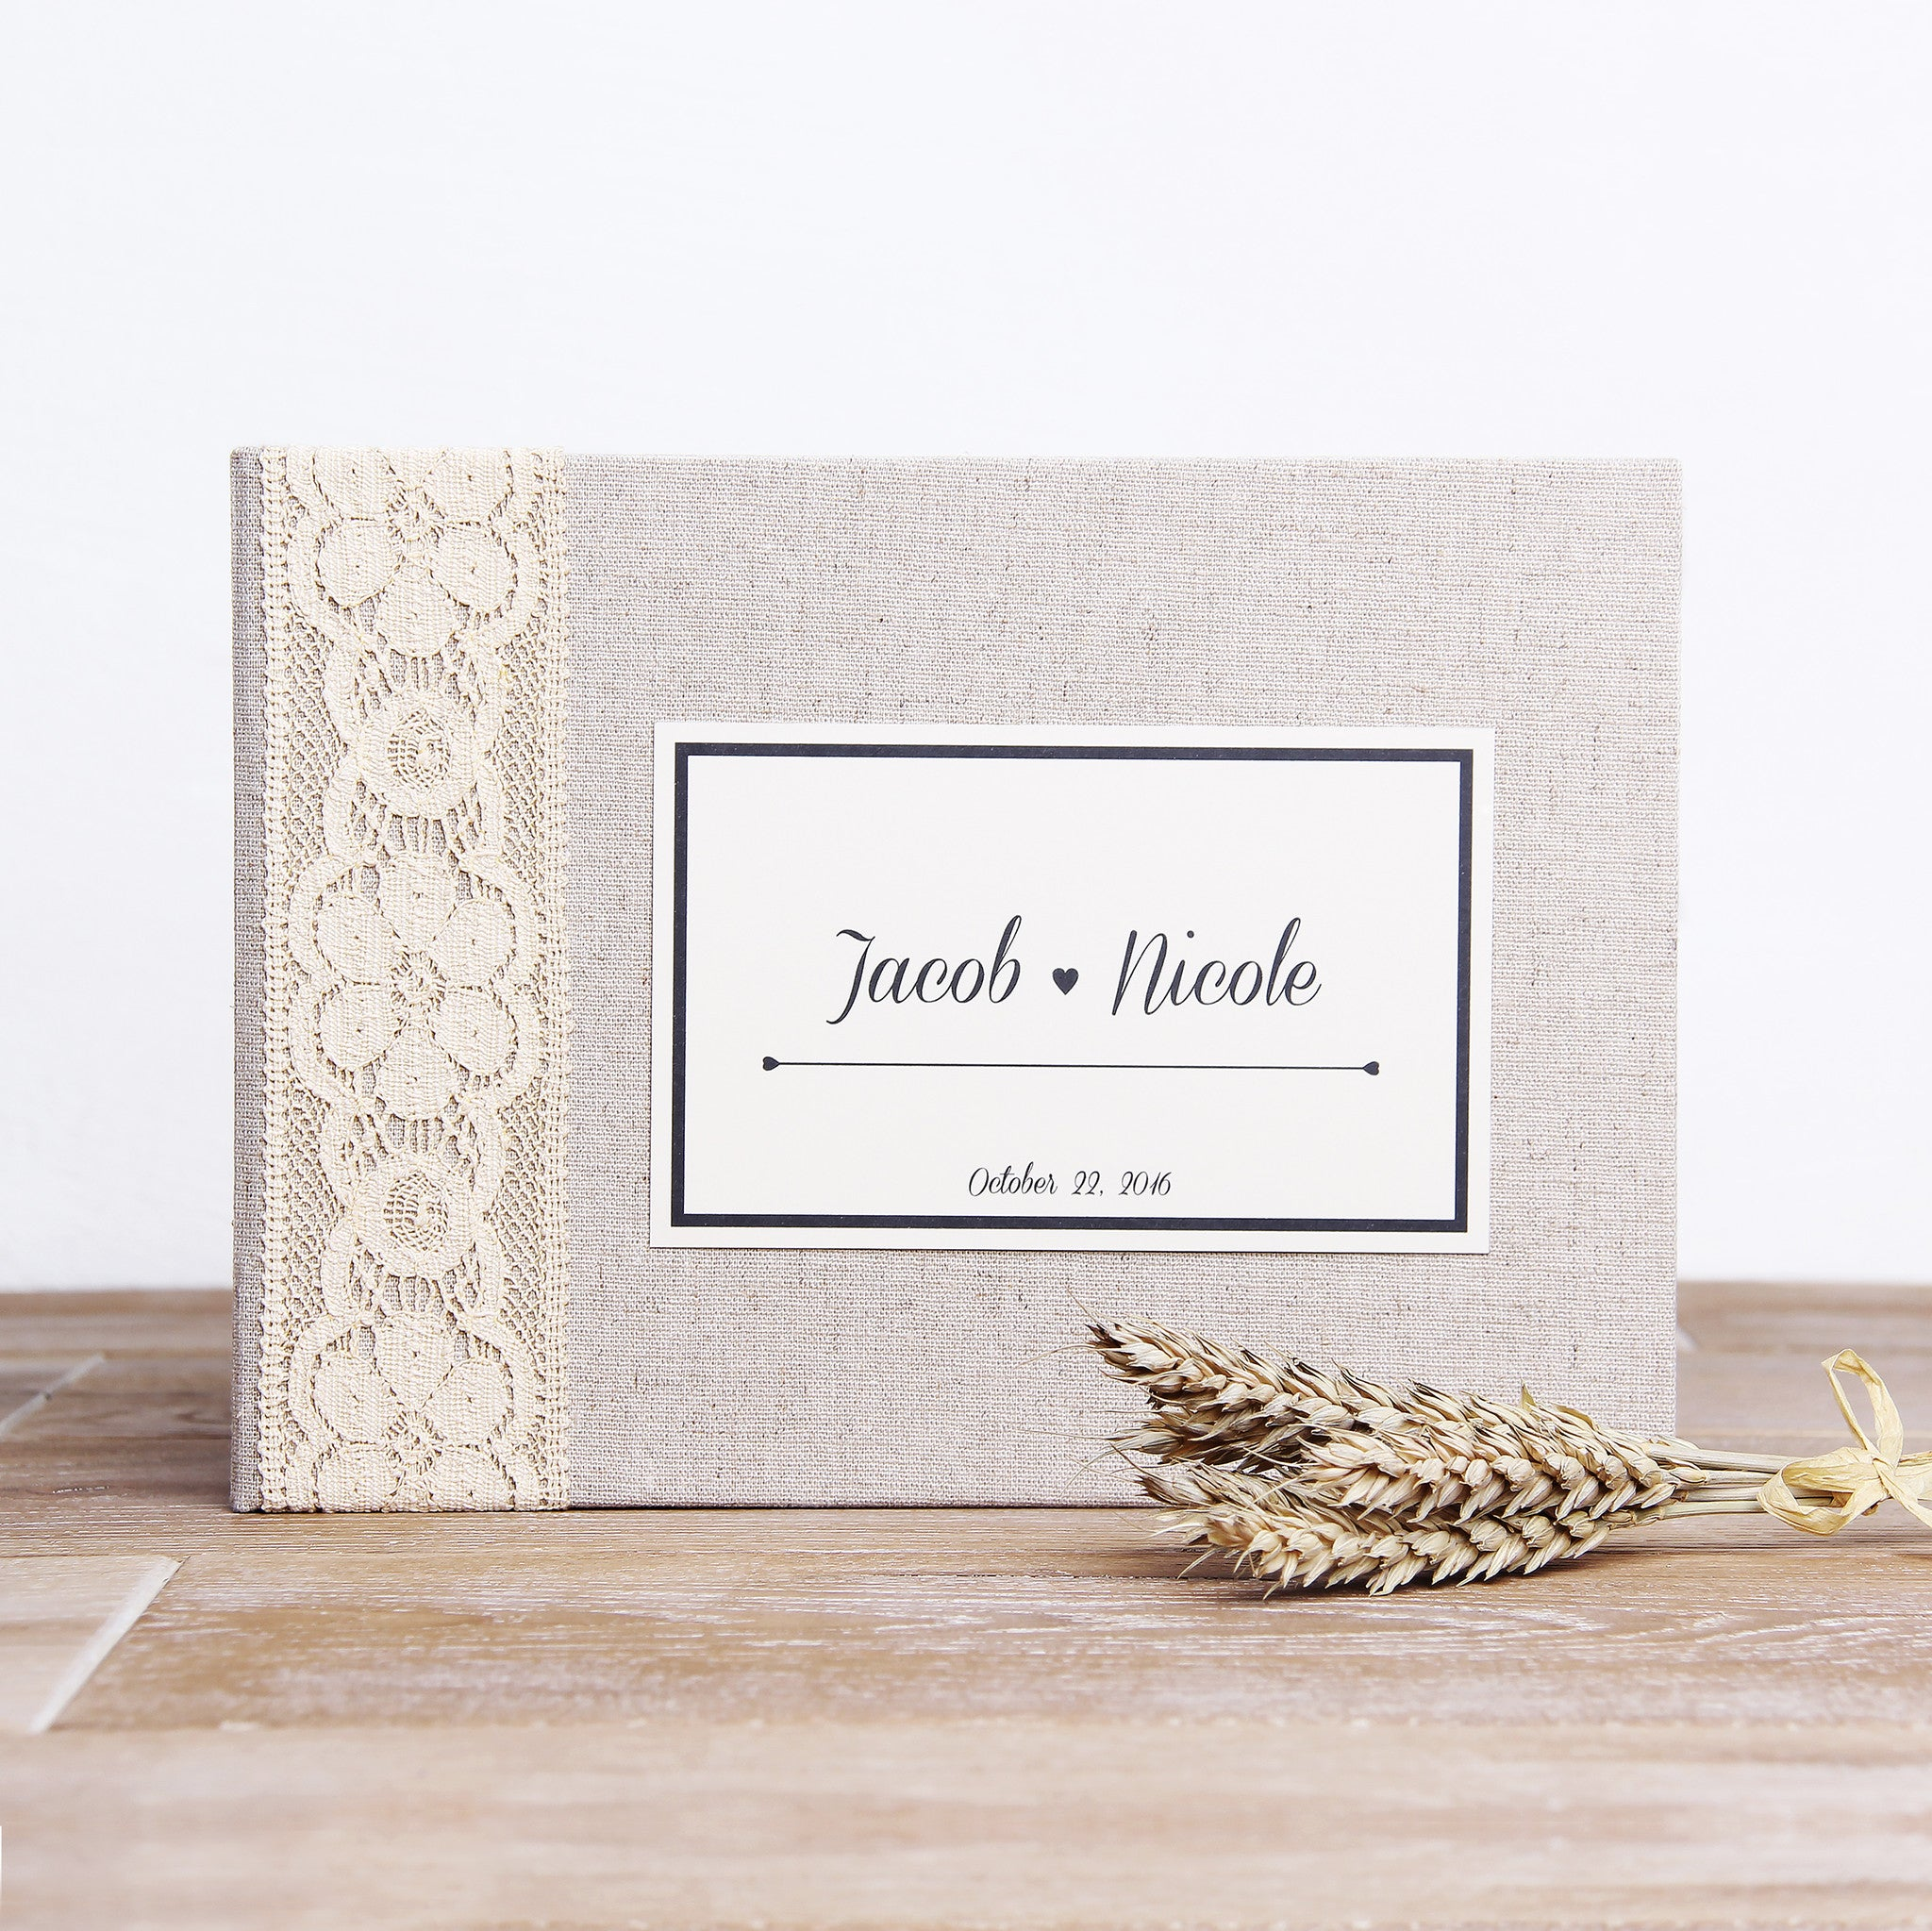 Instant Wedding Guest Book Album Instax Rustic with Ivory Lace Paper Label - By Liumy - Liumy